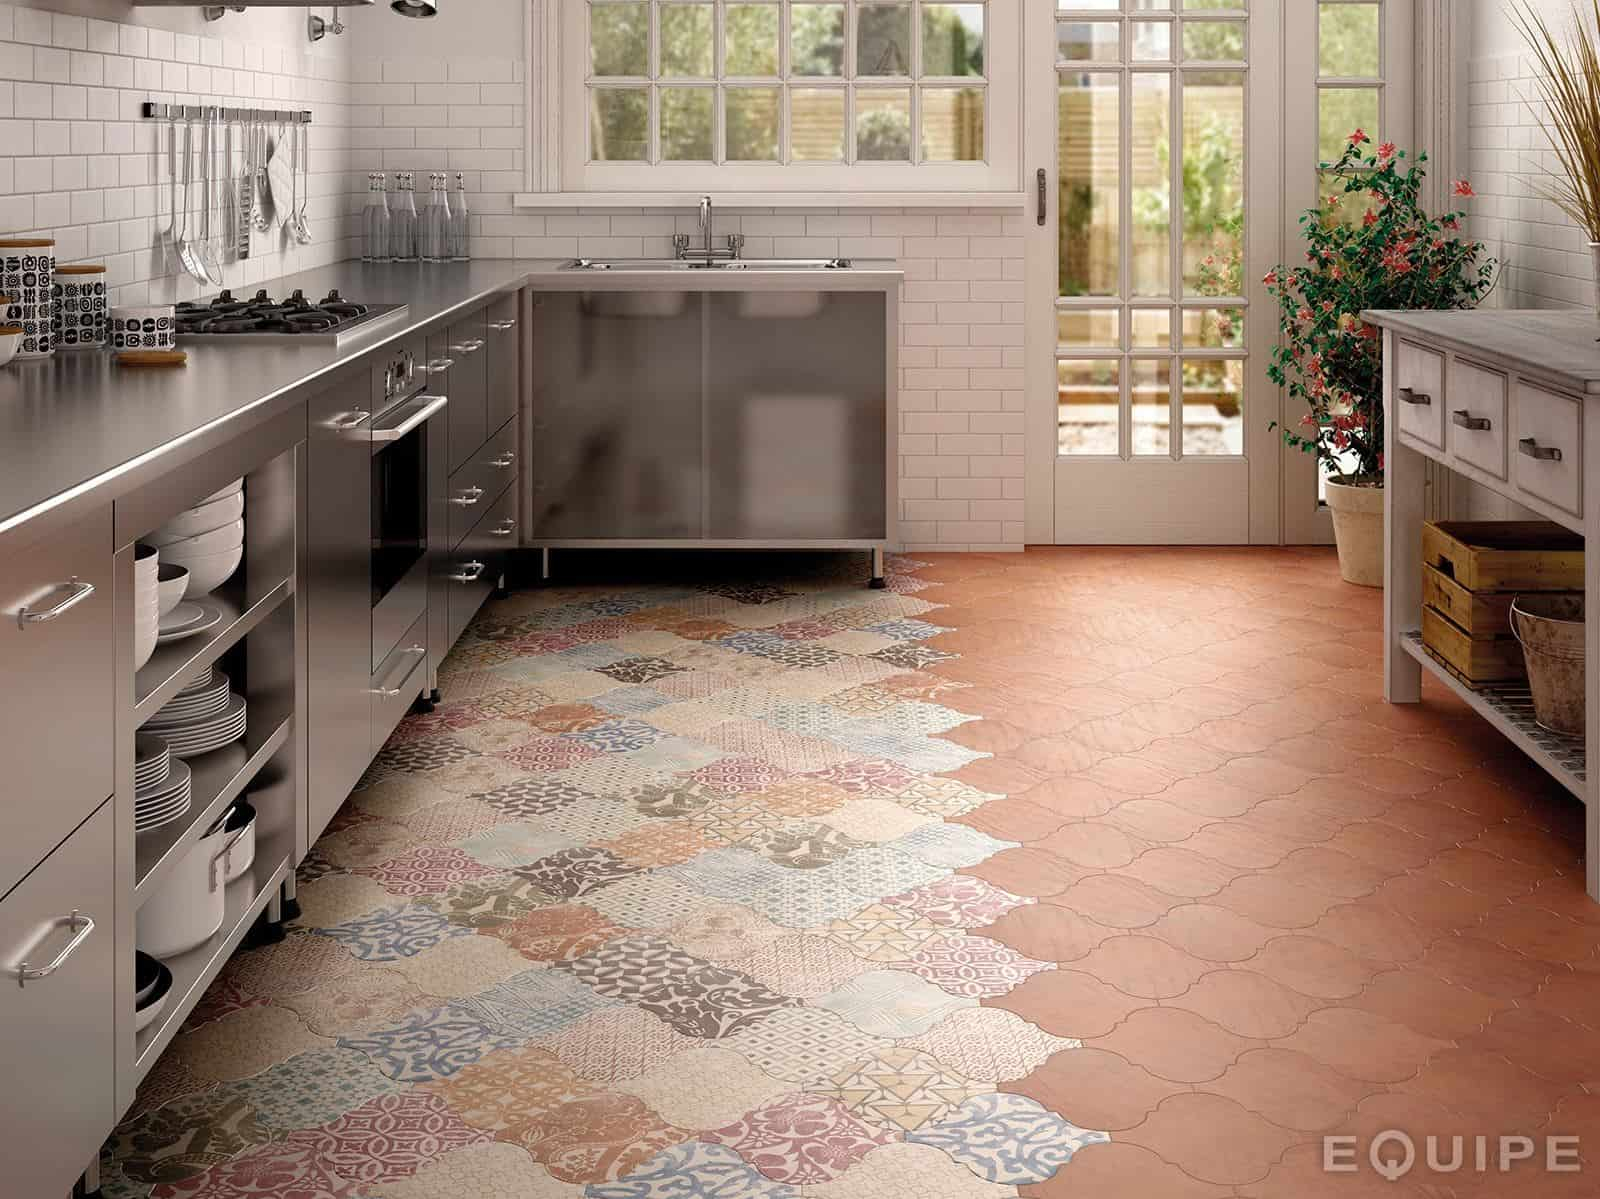 21 arabesque tile ideas for floor wall and backsplash kitchen floor ideas View in gallery arabesque tile kitchen floor patchwork equipe 4